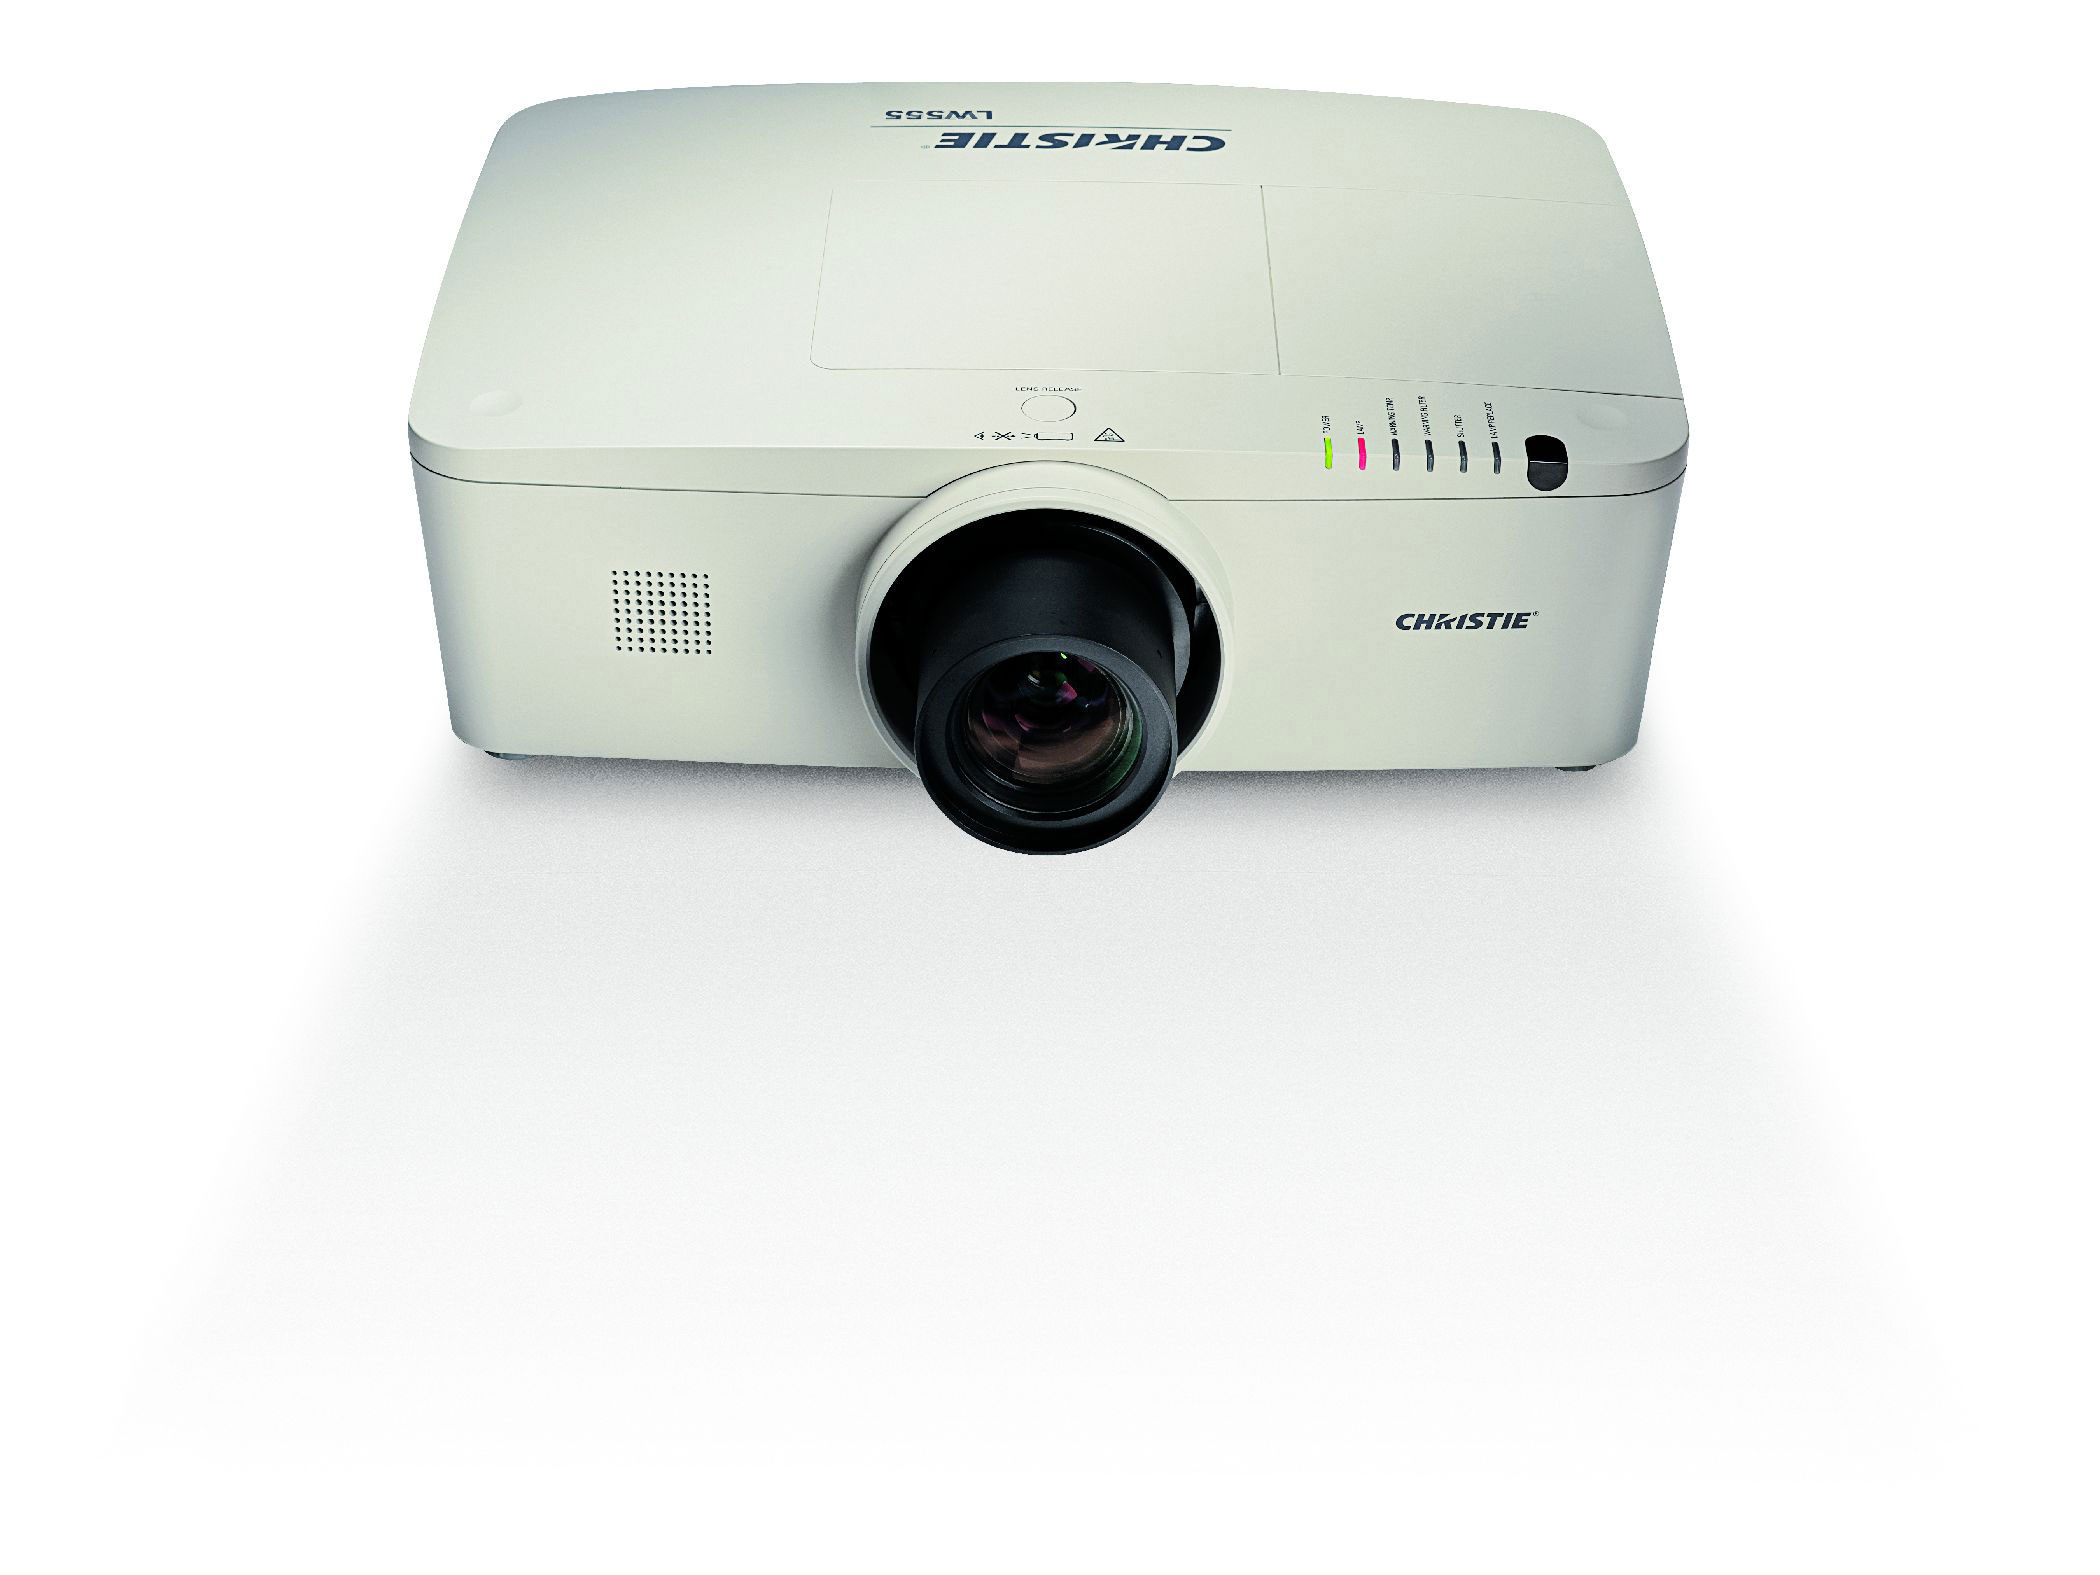 /globalassets/.catalog/products/images/christie-lw555/gallery/christie-lw555-lcd-digital-projector-image7.jpg